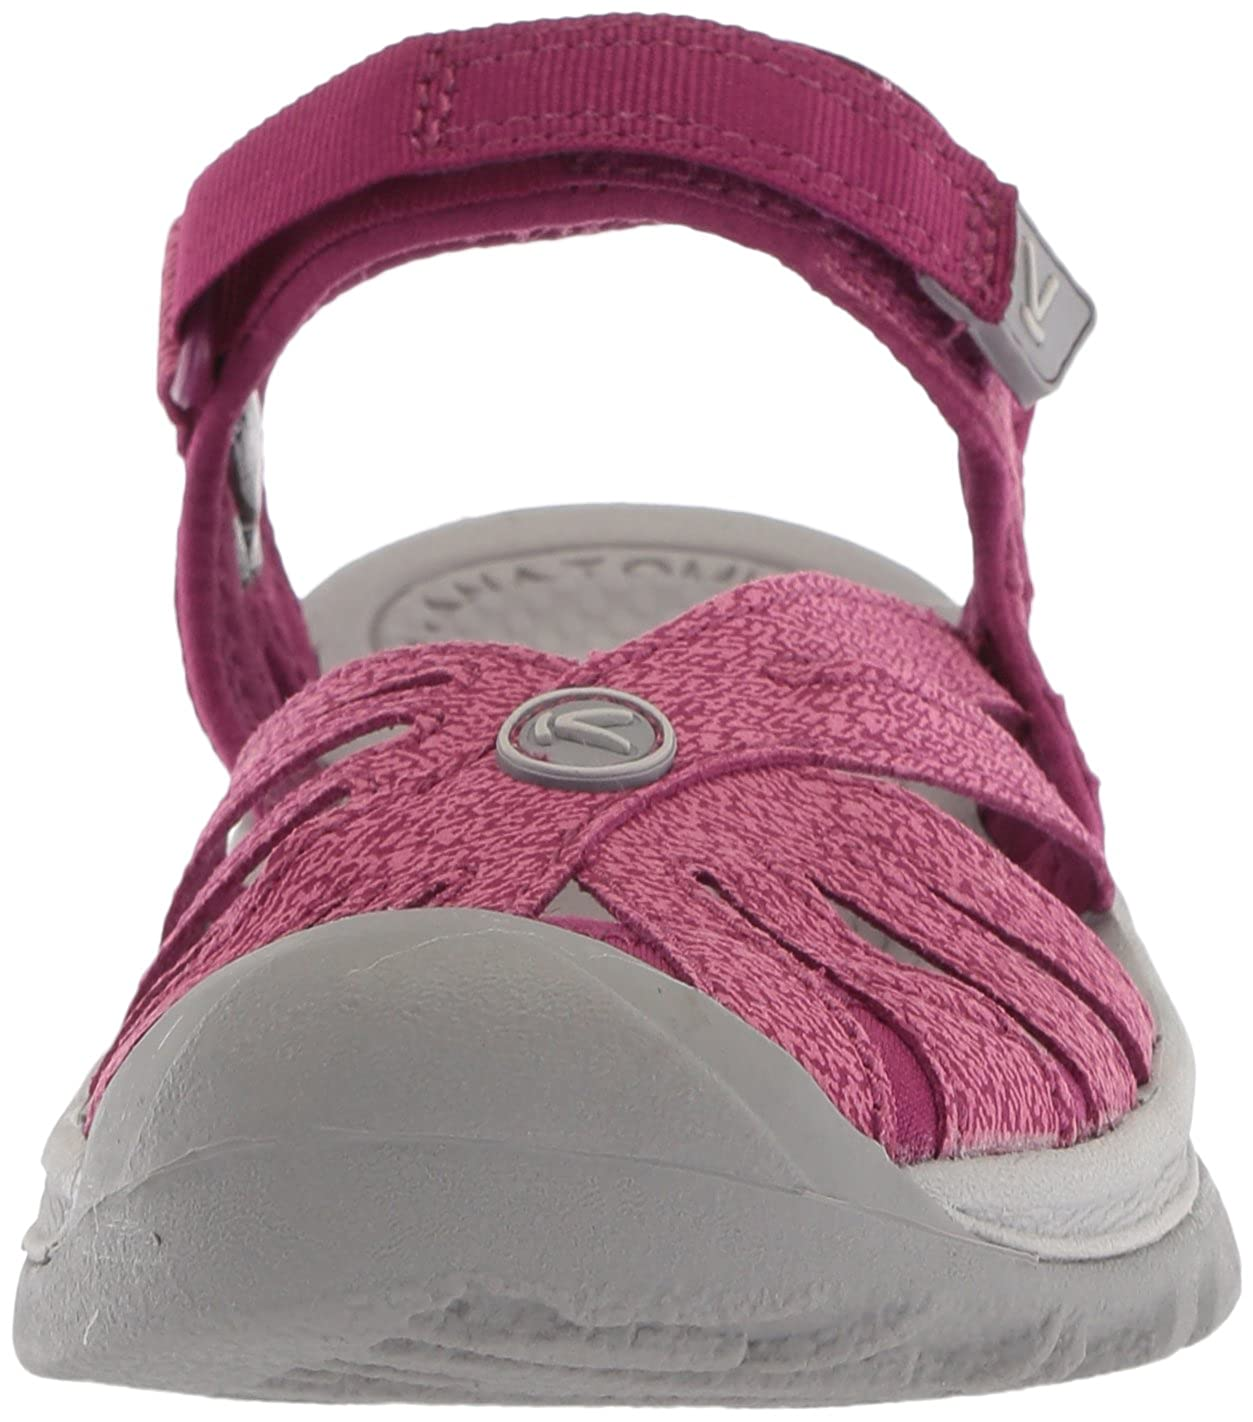 Keen Women's ROSE Sandals Sandals B071R36BV3 Sport Sandals Sandals & Slides d0fc93